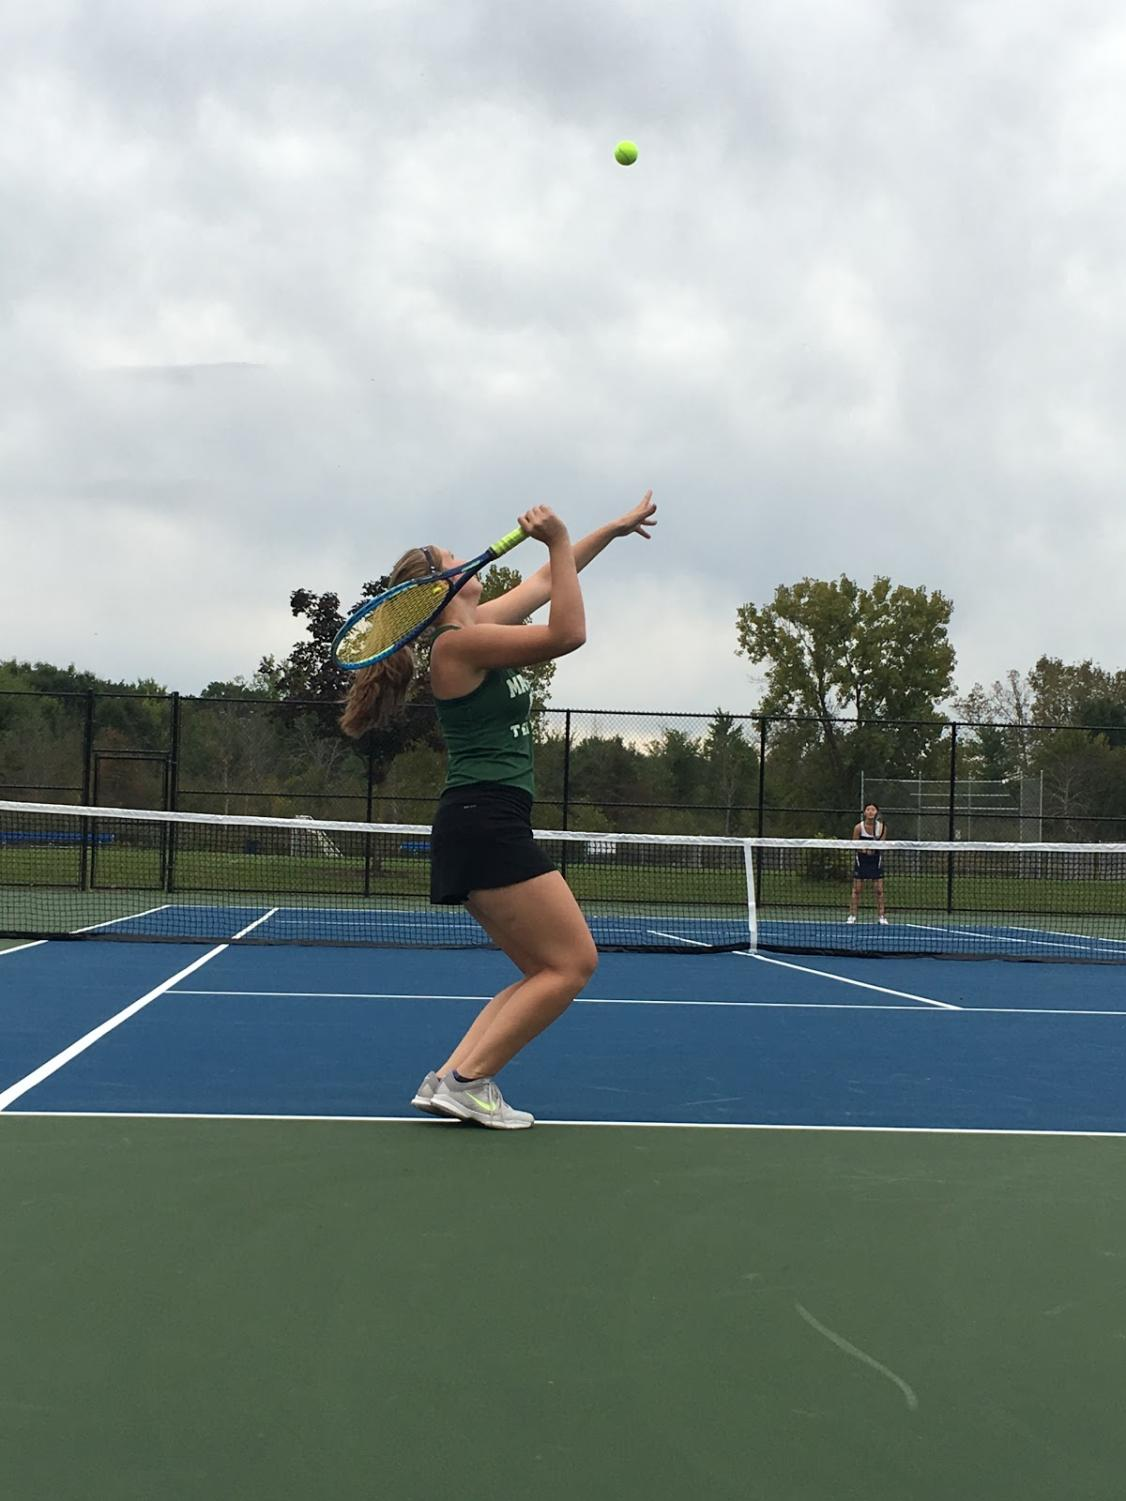 Varsity tennis player Katie Eippert is seen serving at Highland Heights tennis courts.